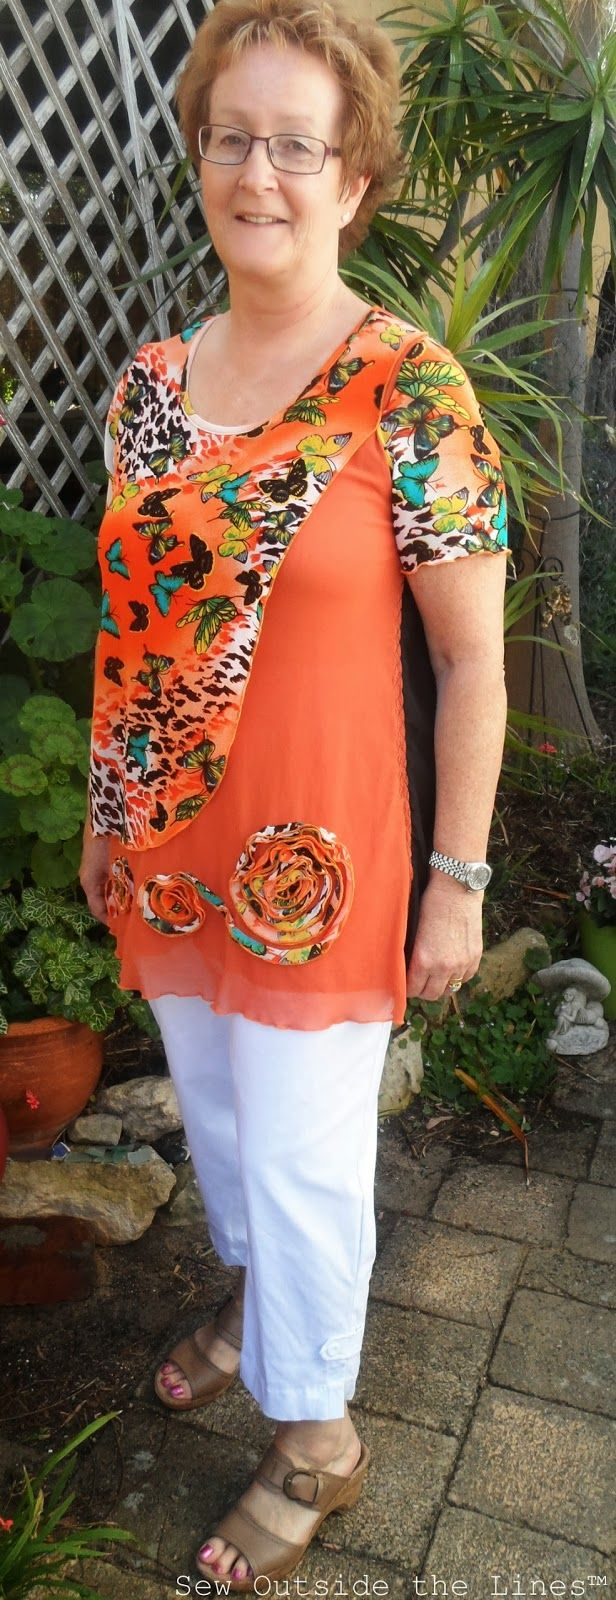 Sew Outside the Lines™ with Jody Pearl: Sew-What-You-Like Workshop - Day4